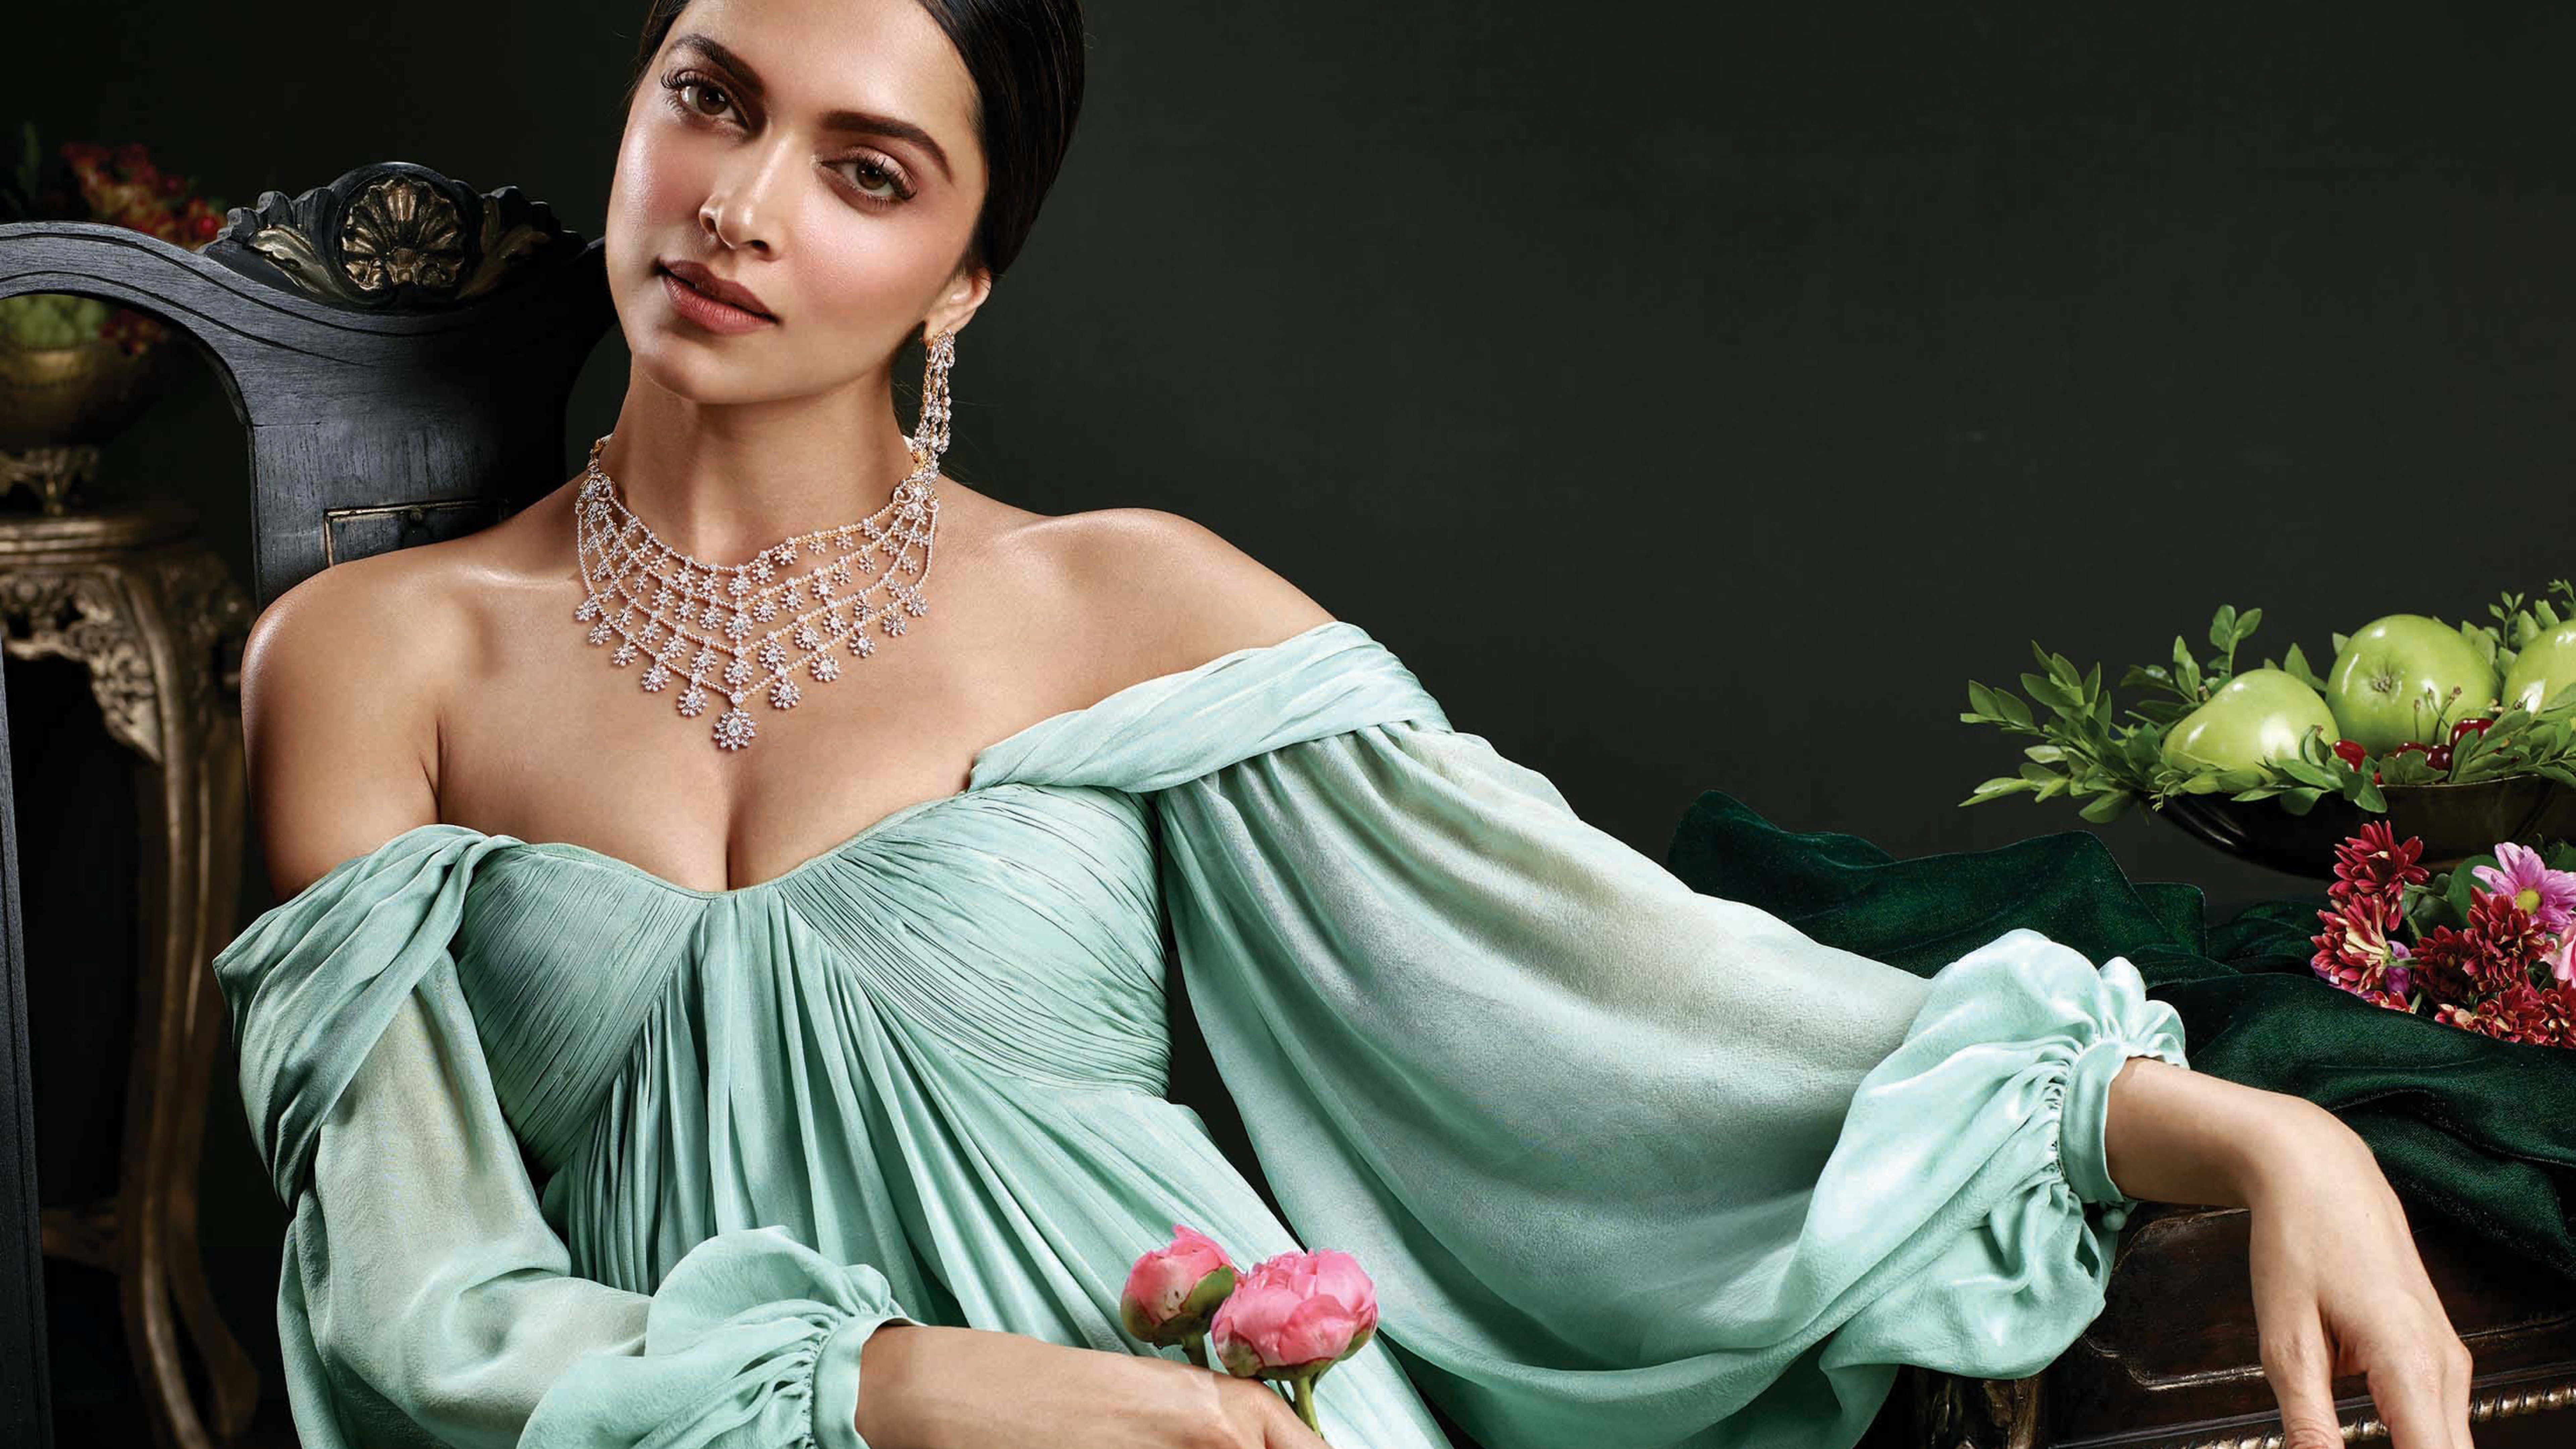 deepika padukone hd wallpapers, 4k & 8k deepika padukone photos